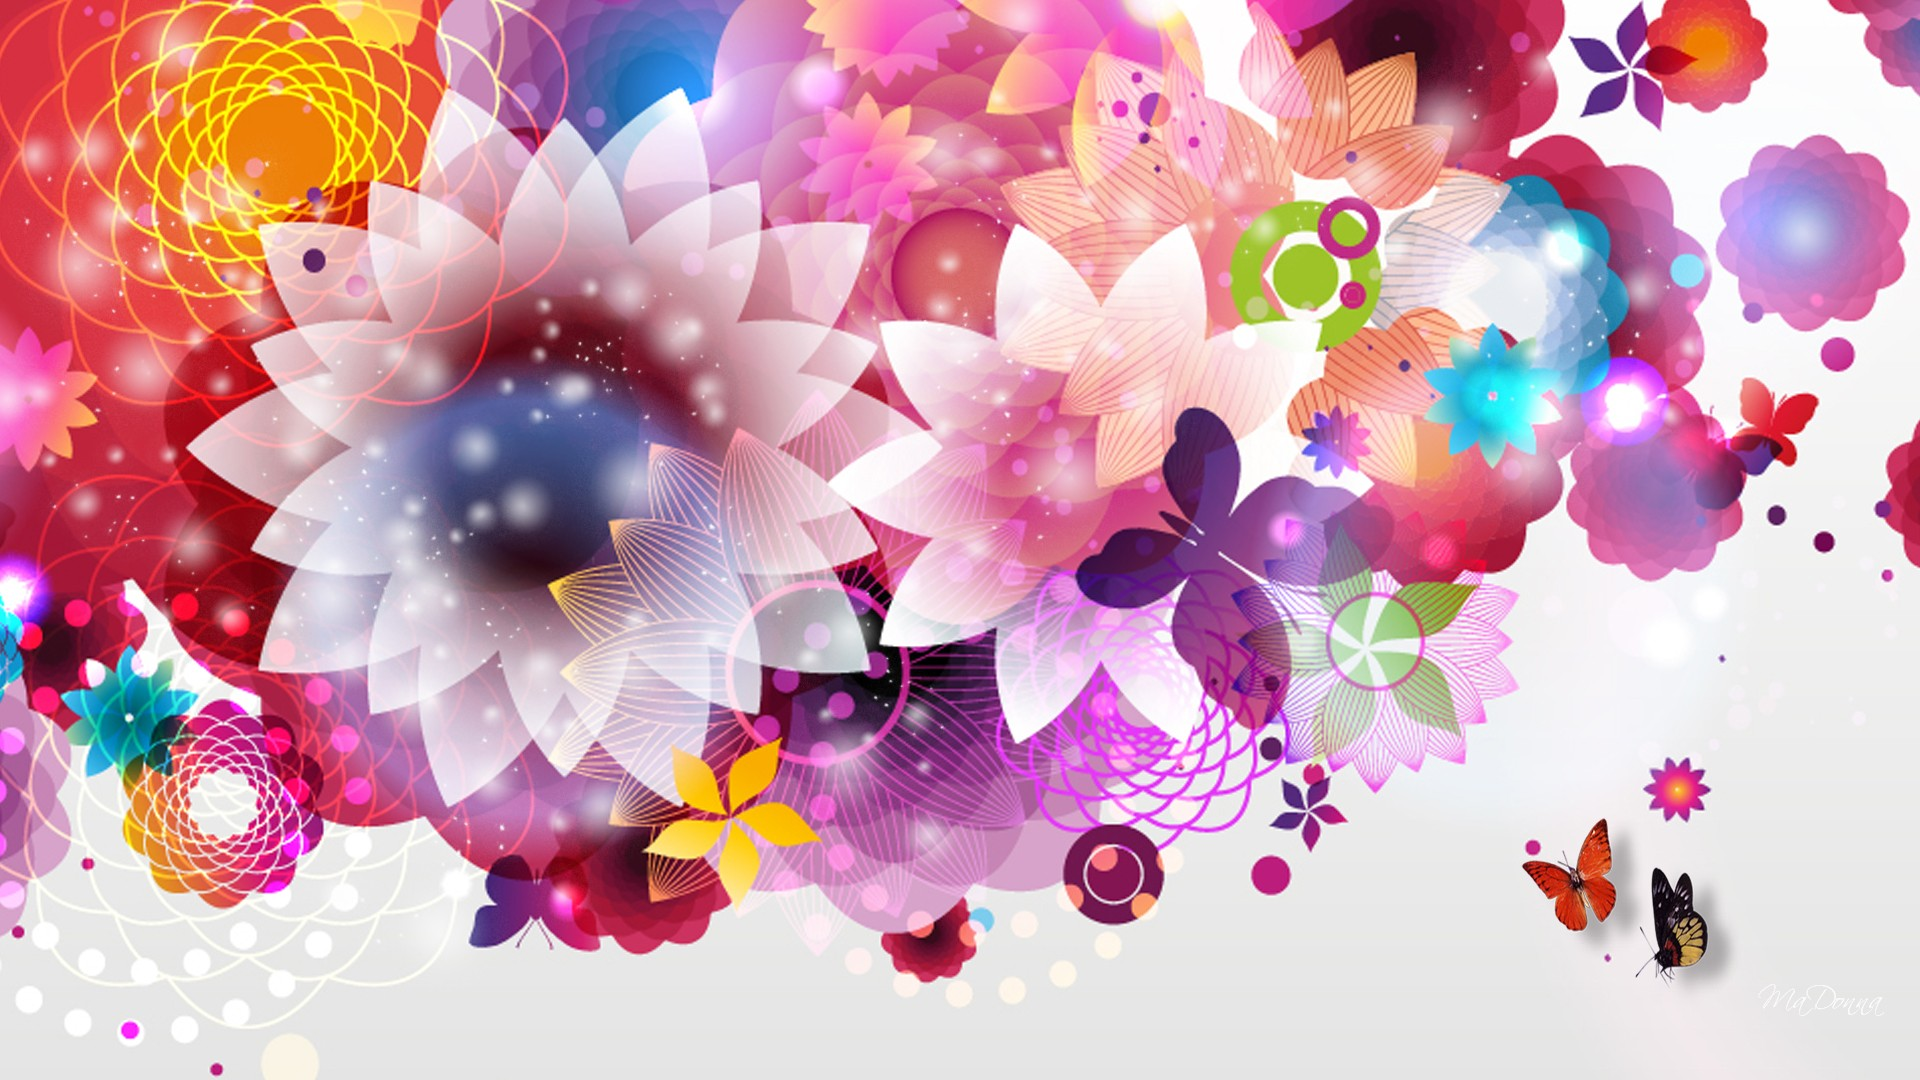 bright abstract flowers wallpaper.